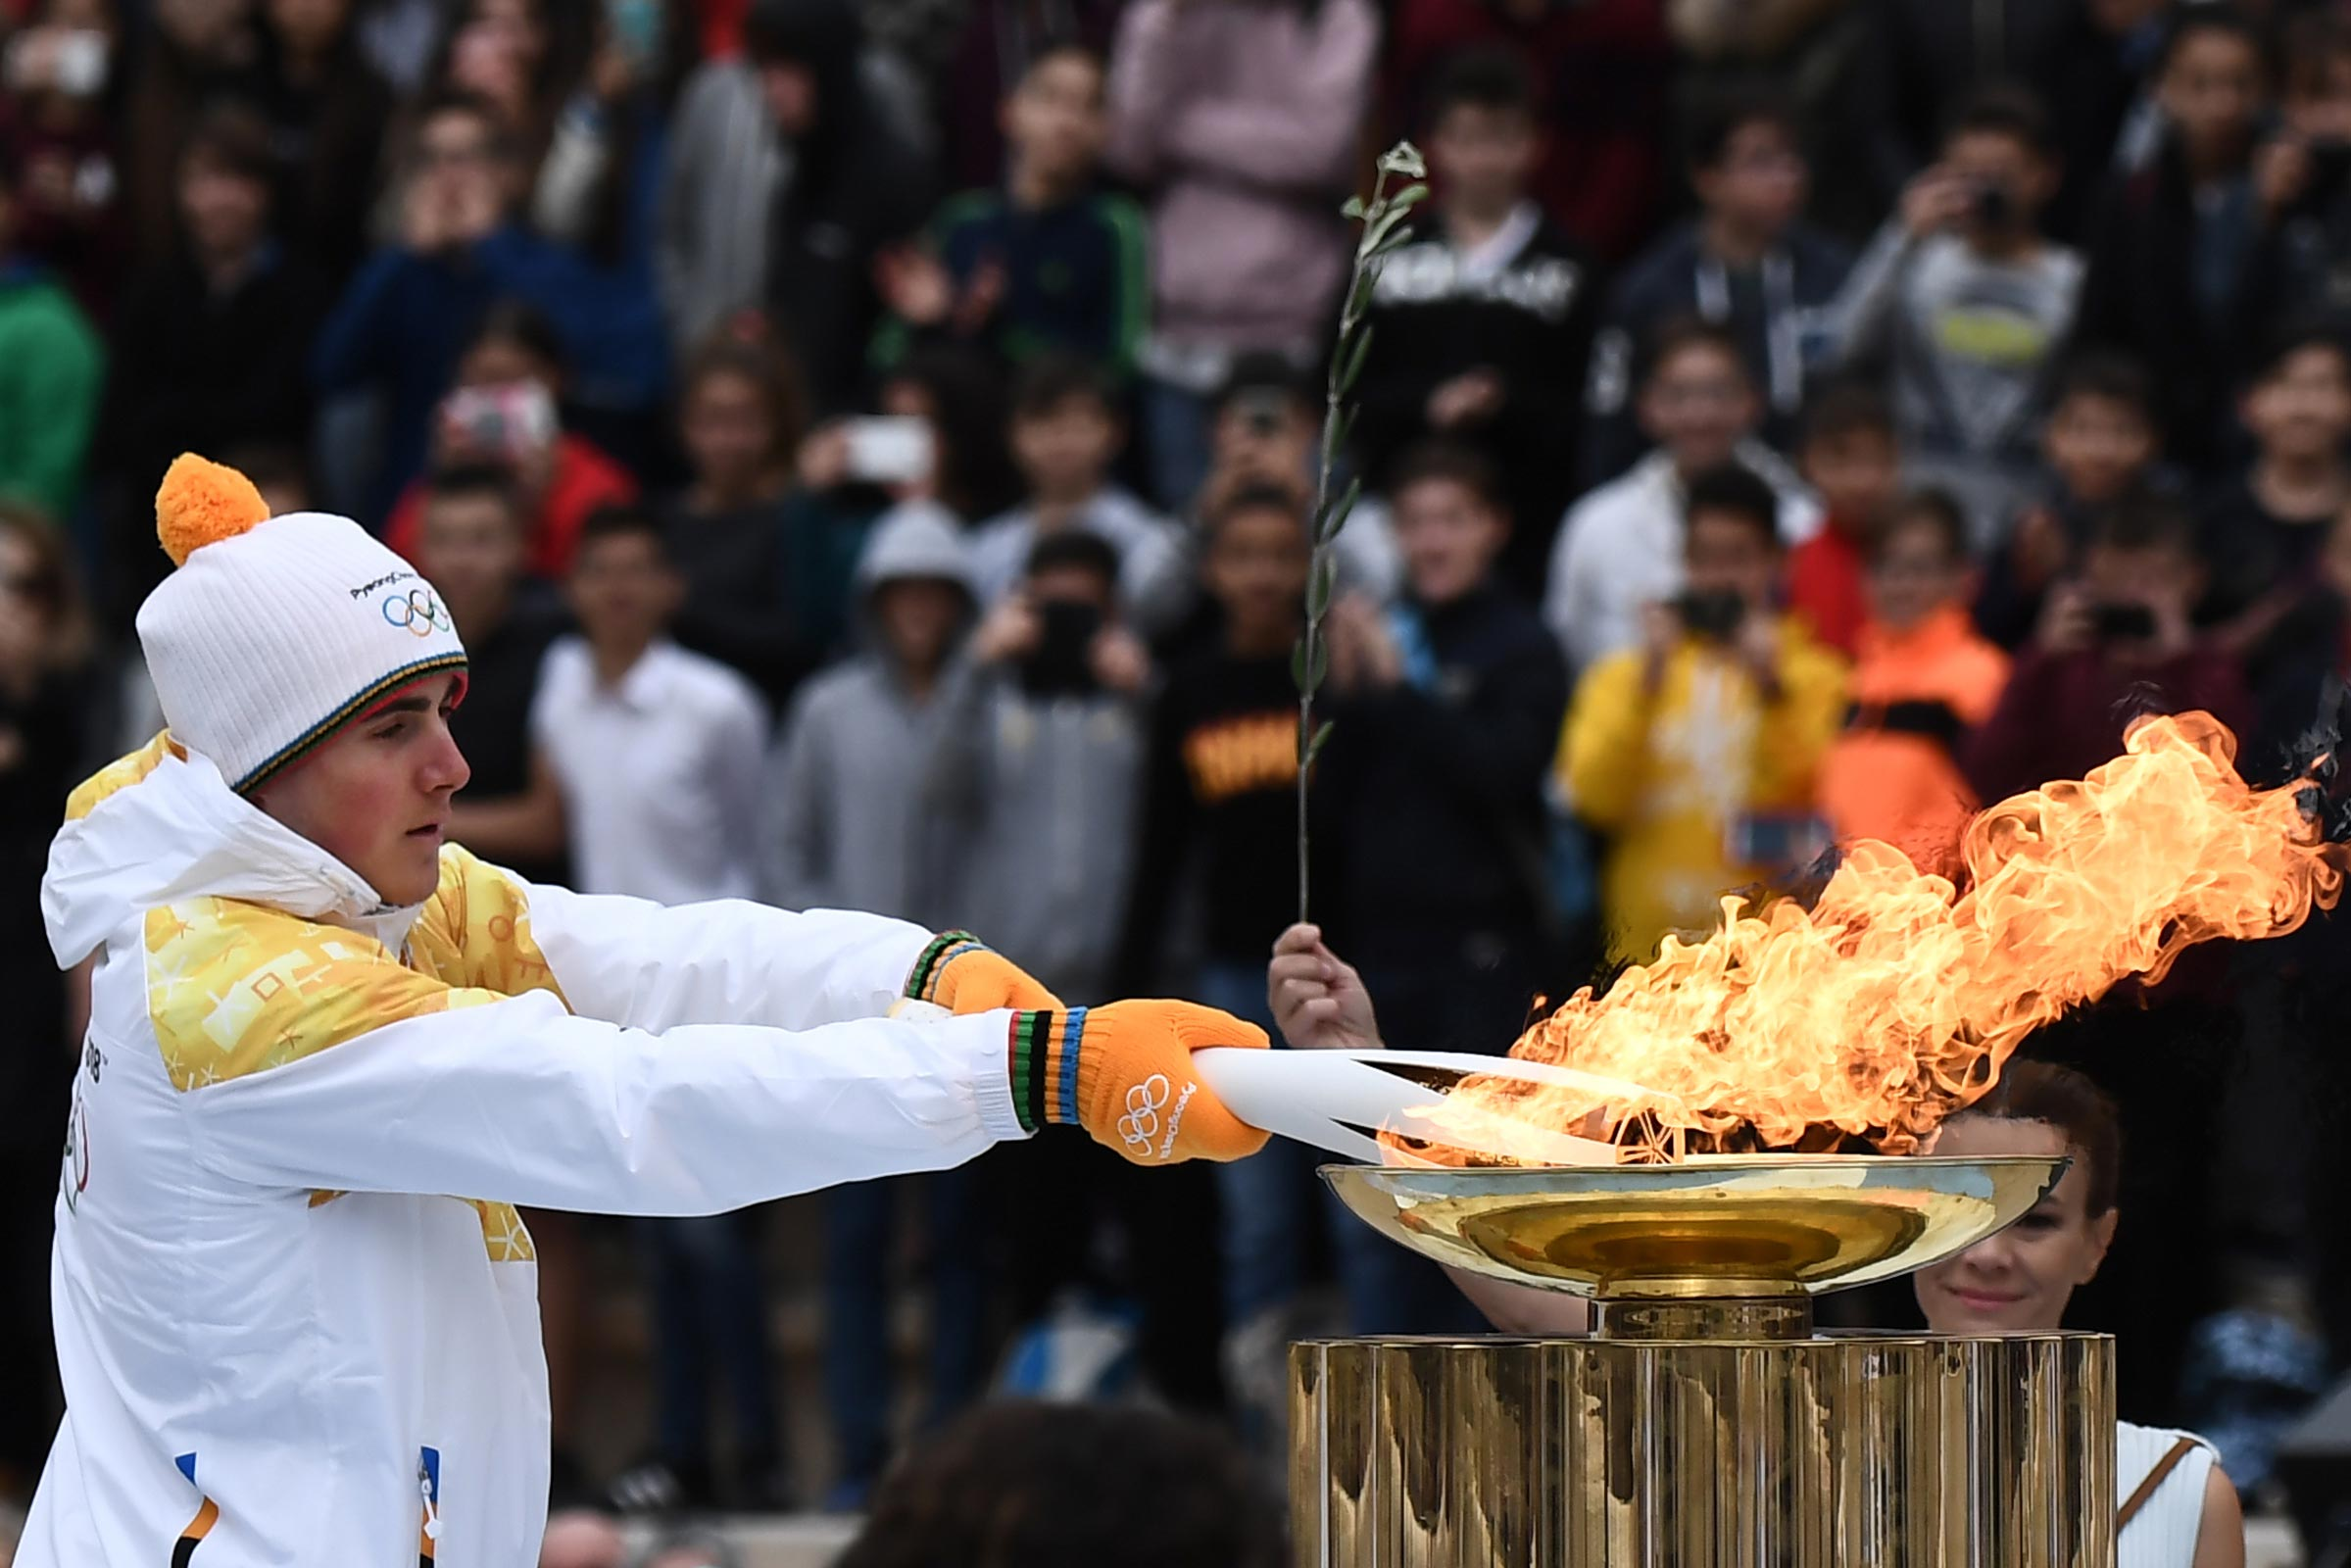 PyeongChang 2018 Torch Handover ceremony